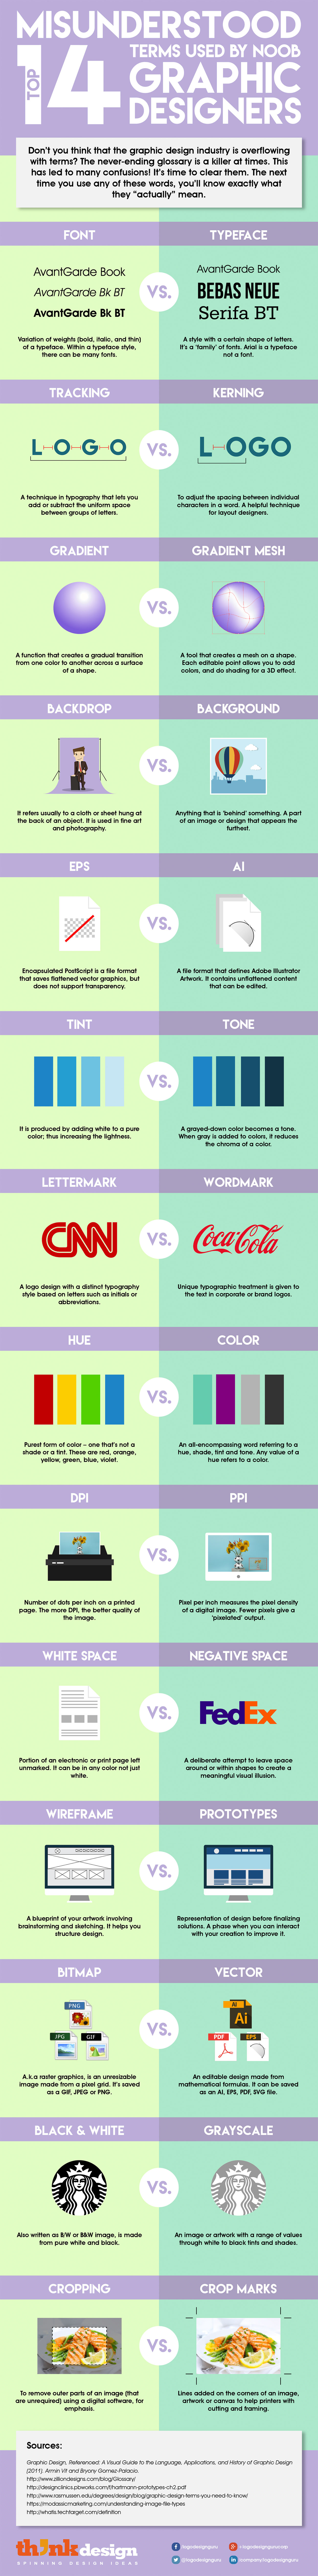 infographic on graphic design mistakes